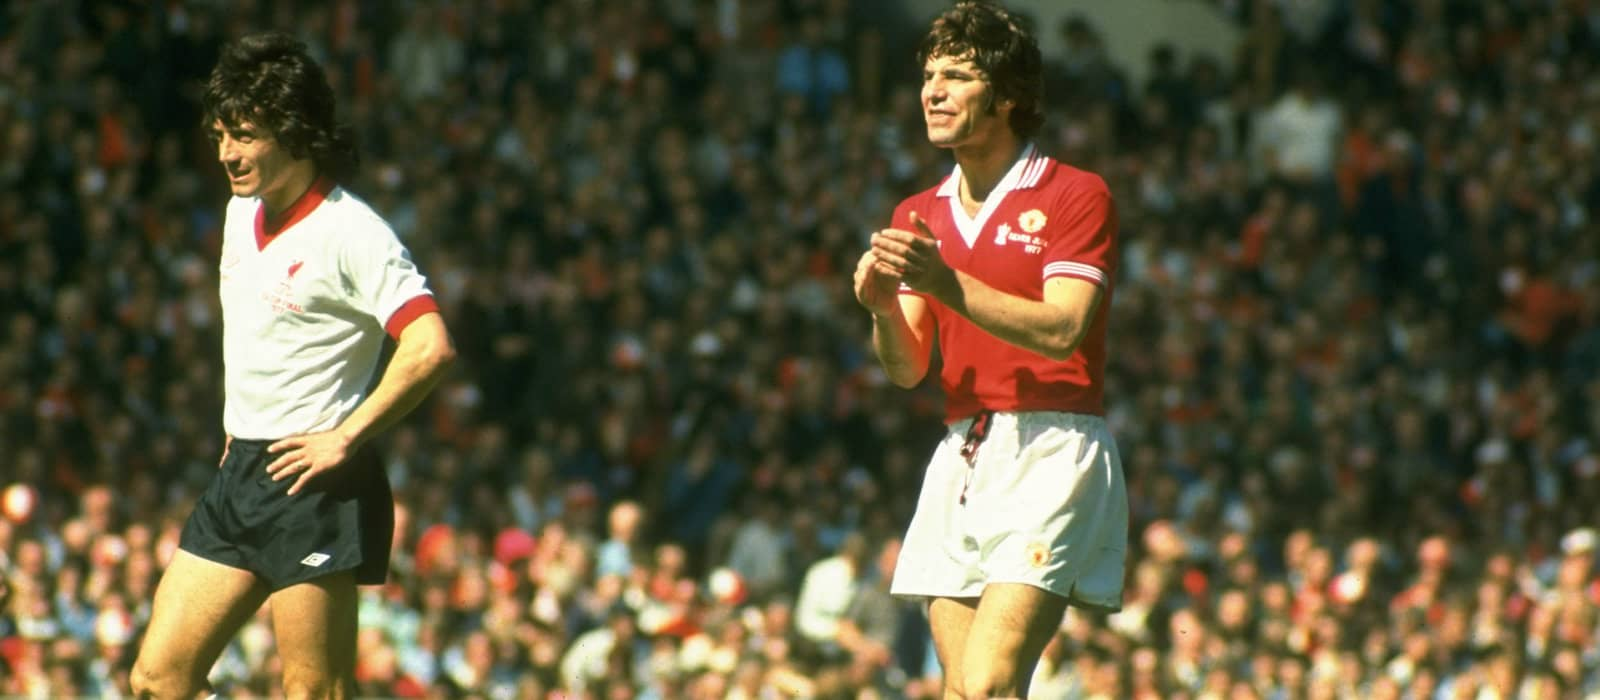 FA Cup Final Series 1976/7: Manchester United 2-1 Liverpool